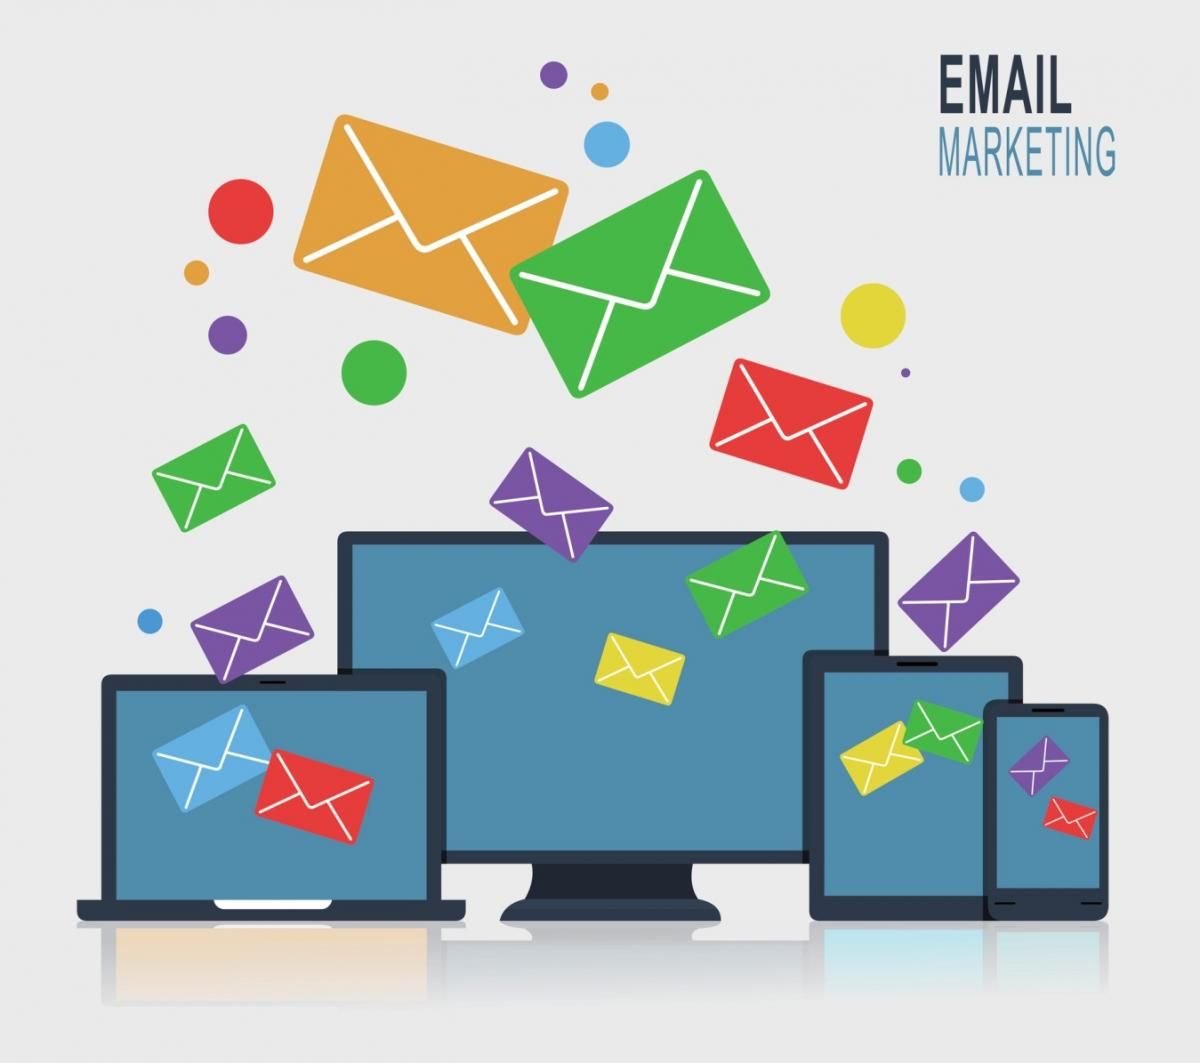 Insurance Email Marketing